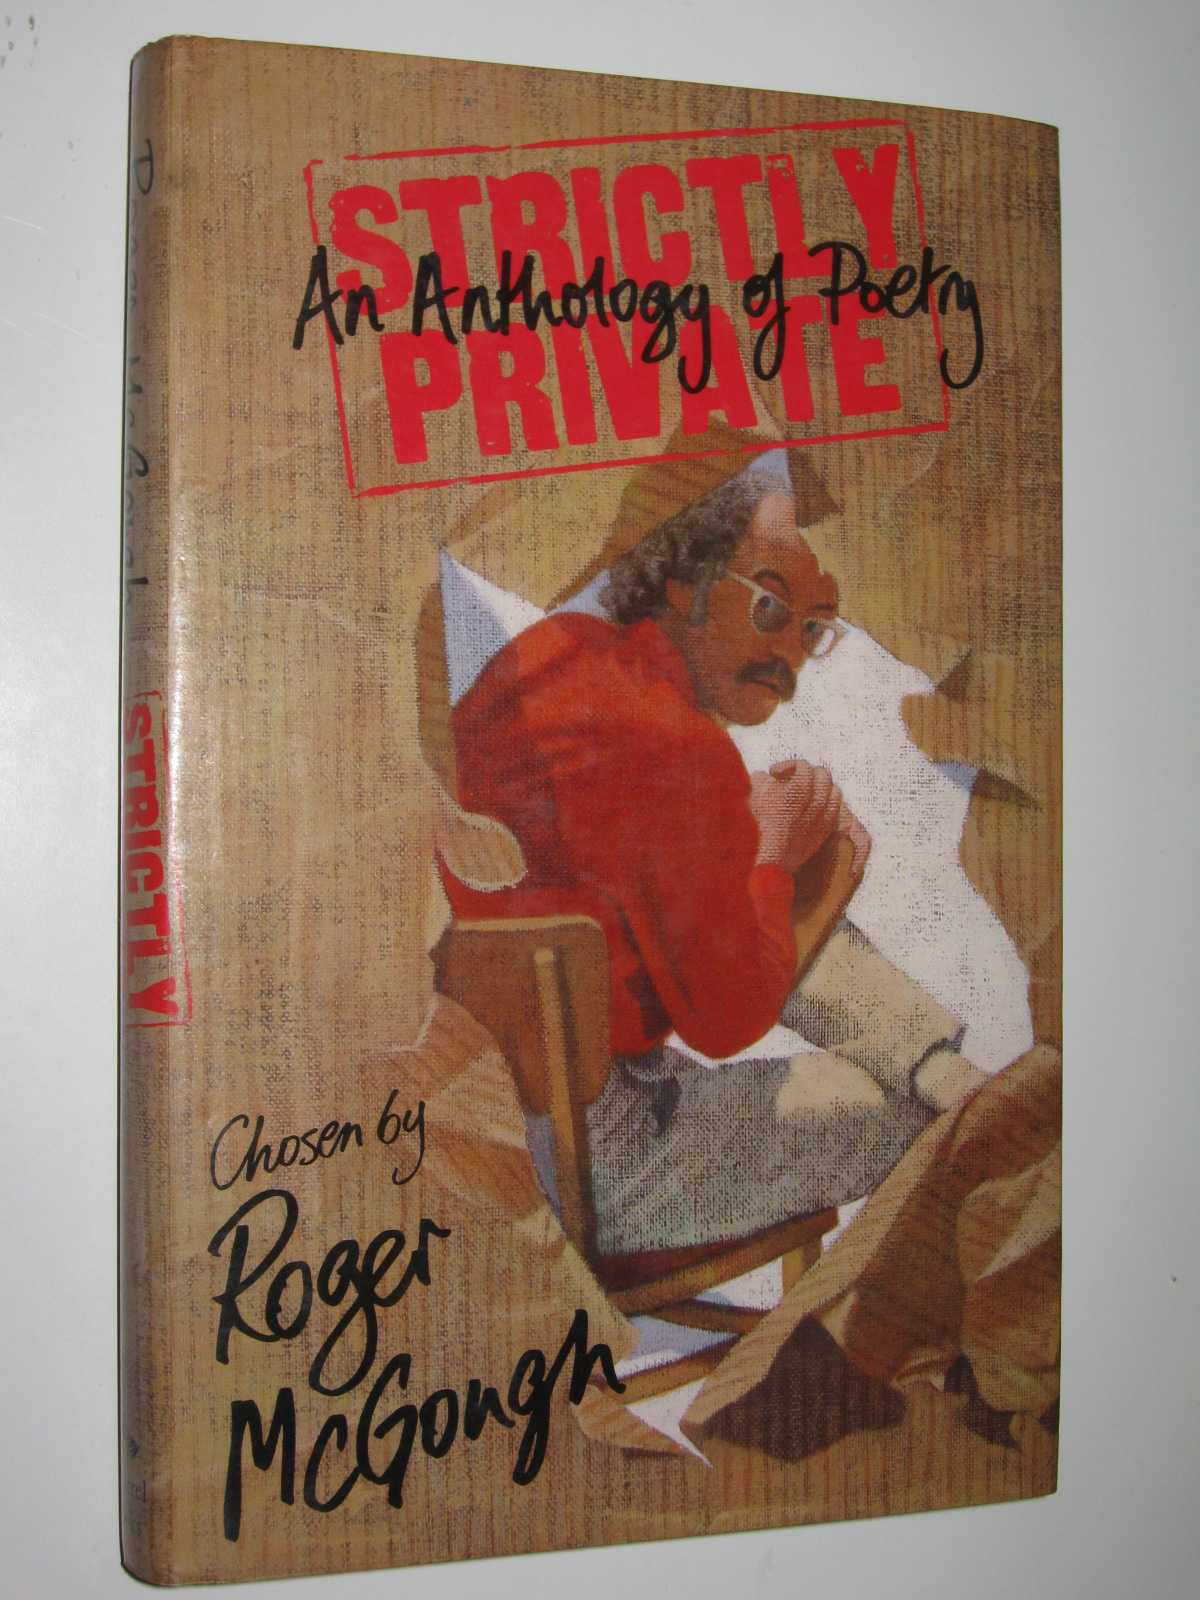 Strictly Private - An Anthology Of Poetry, McGongh, Roger (Chosen By)